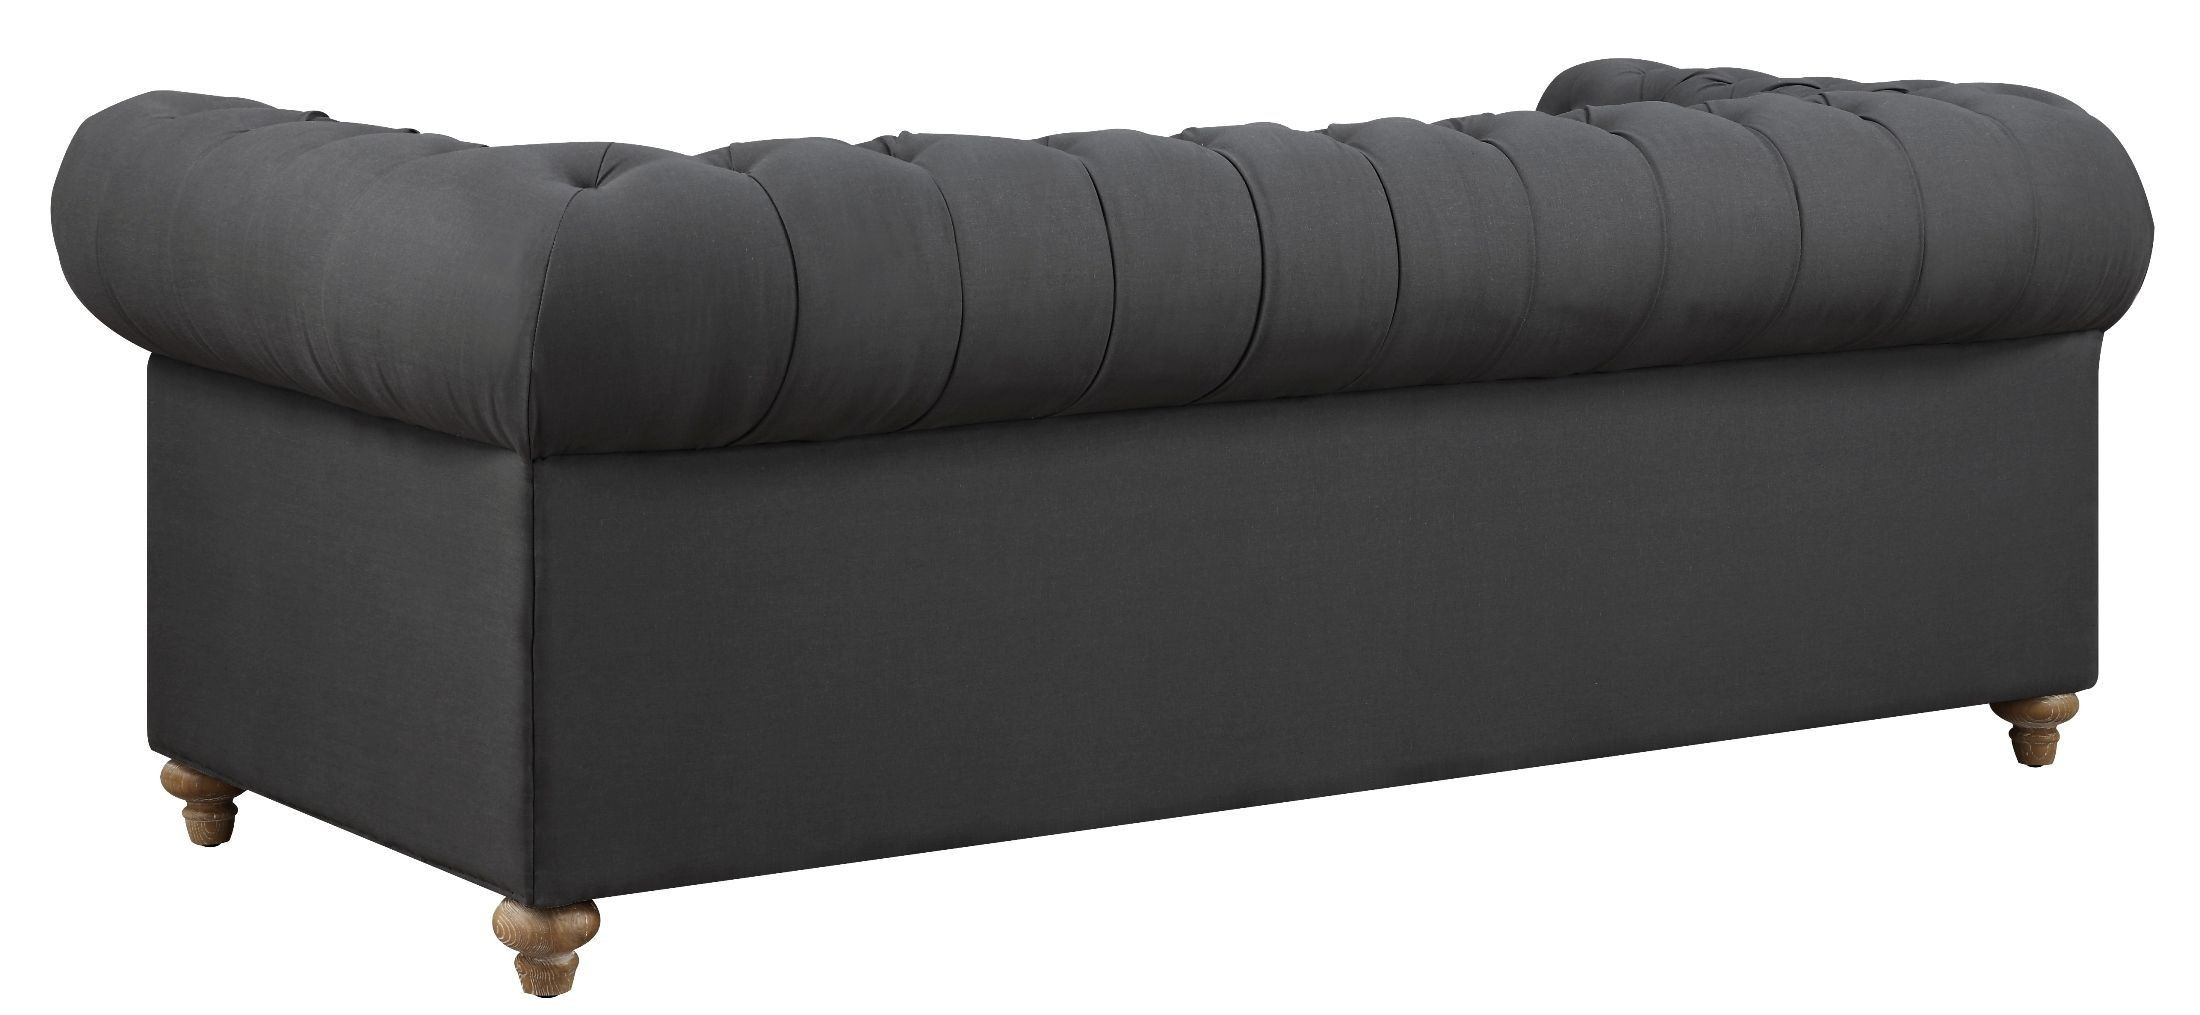 Oxford gray linen sofa from tov s34 coleman furniture for Furniture oxford sectional sofa